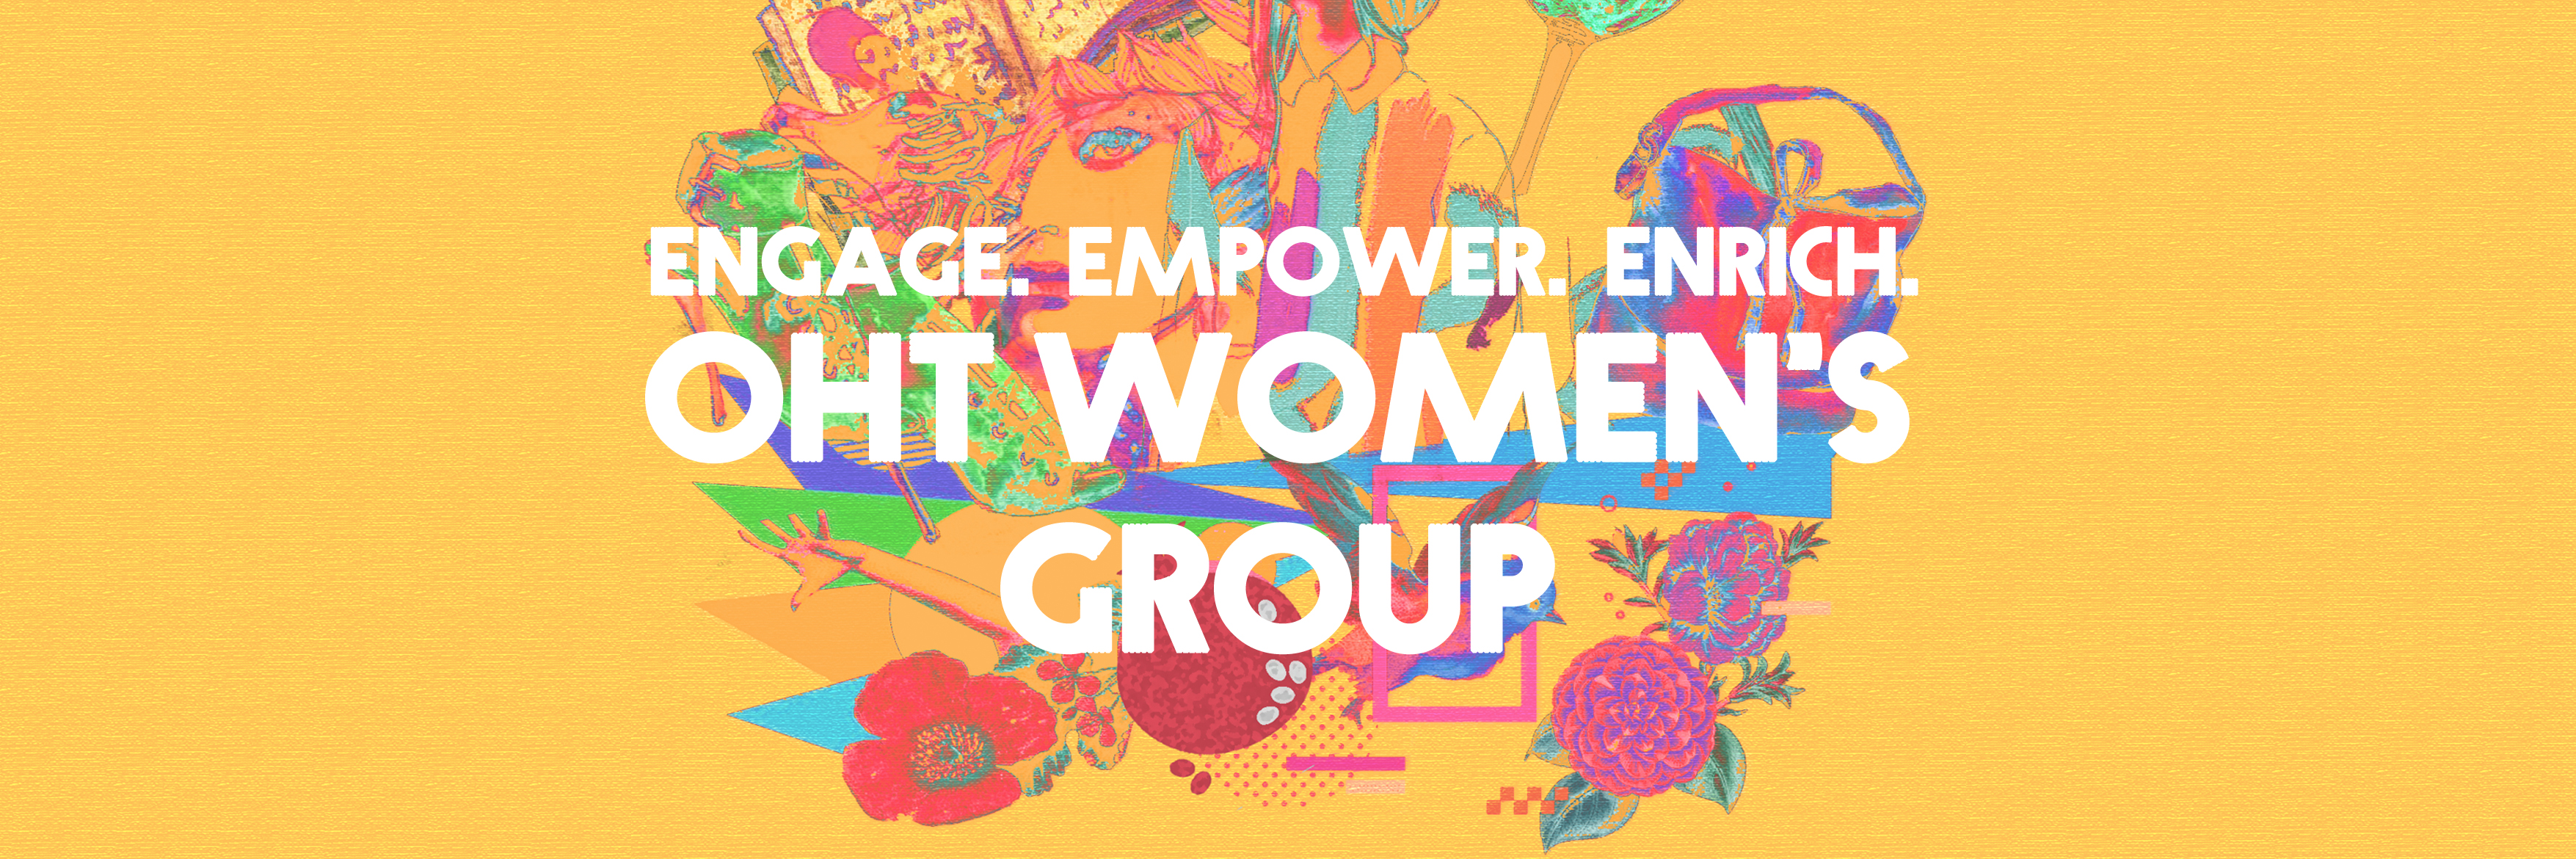 Banner Image for Women's Group Launch - Yoga